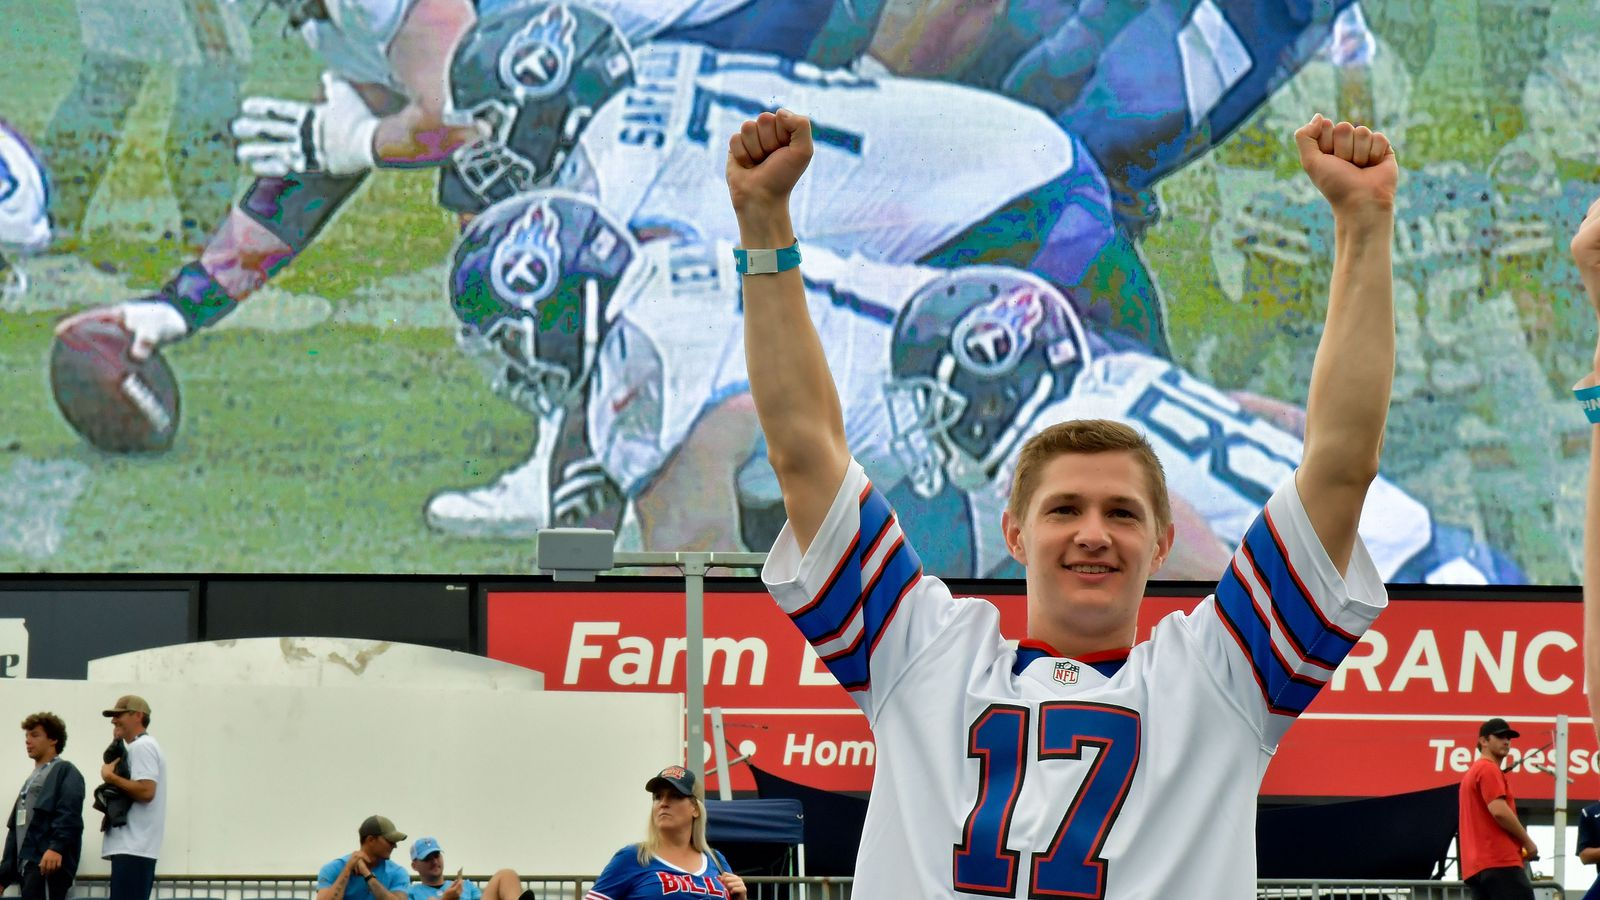 Bills fans reach new heights of confidence entering bye week